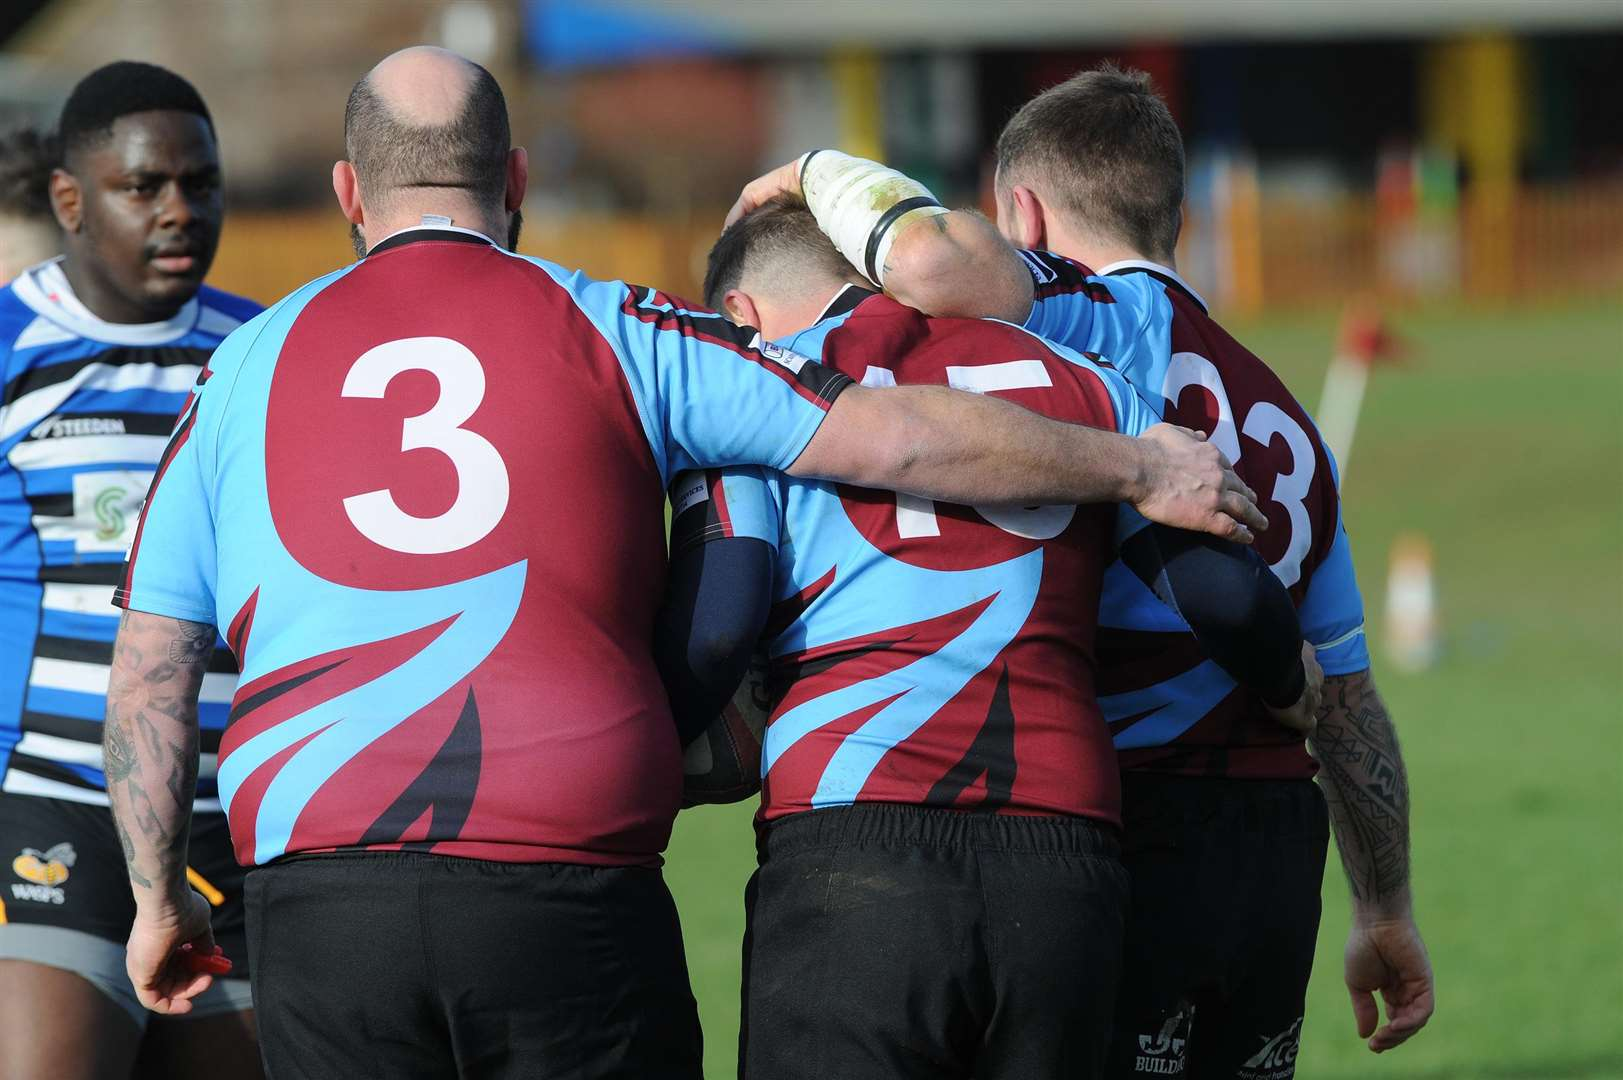 RUGBY - Haverhill v Sawston..Pictured: ...PICTURE: Mecha Morton. (7130606)